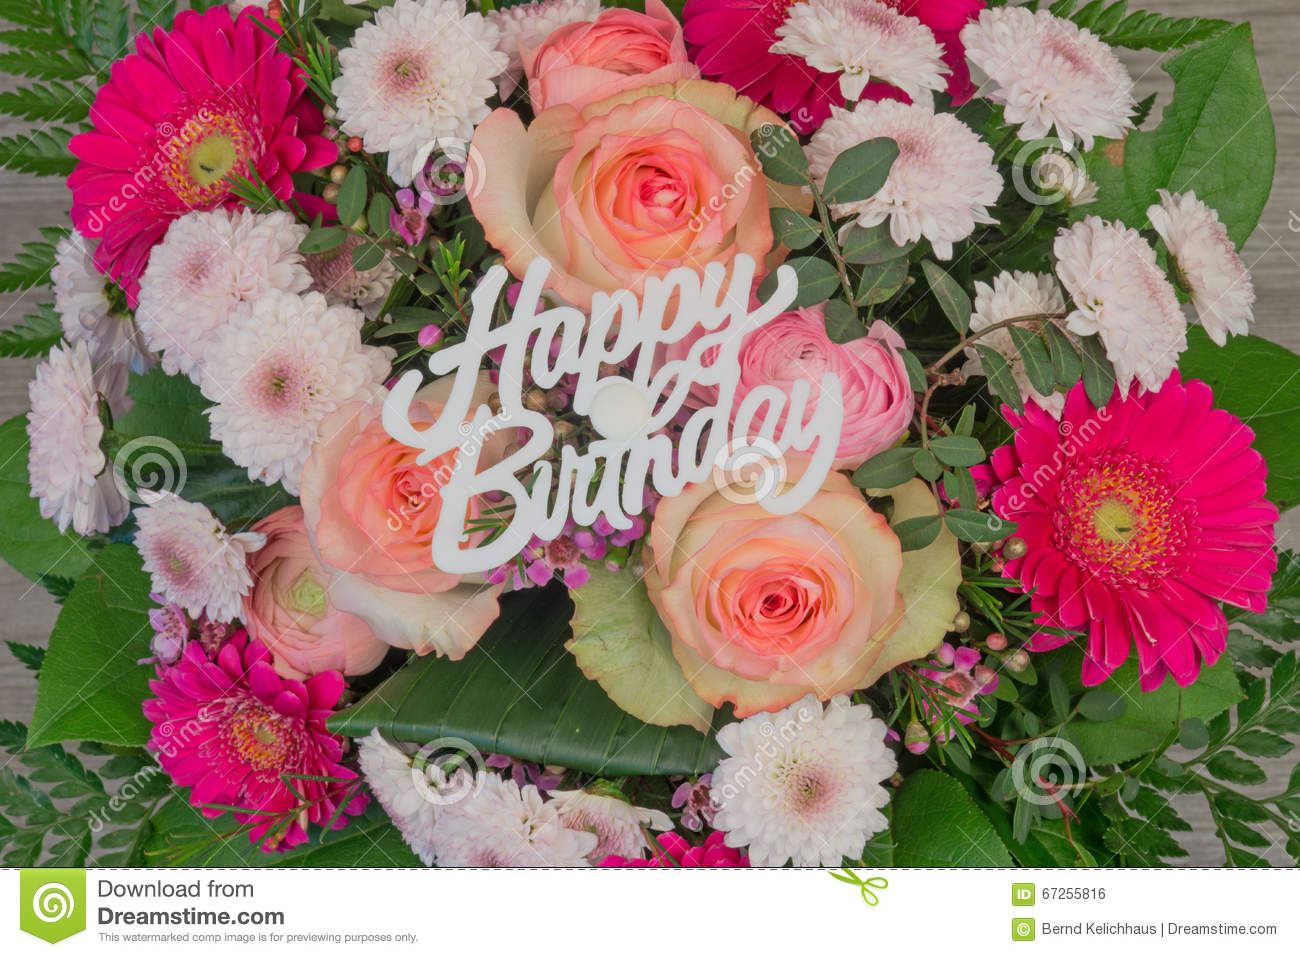 Flower bouquet with text happy birthday stock photo image of flower bouquet with text happy birthday celebration holiday izmirmasajfo Image collections